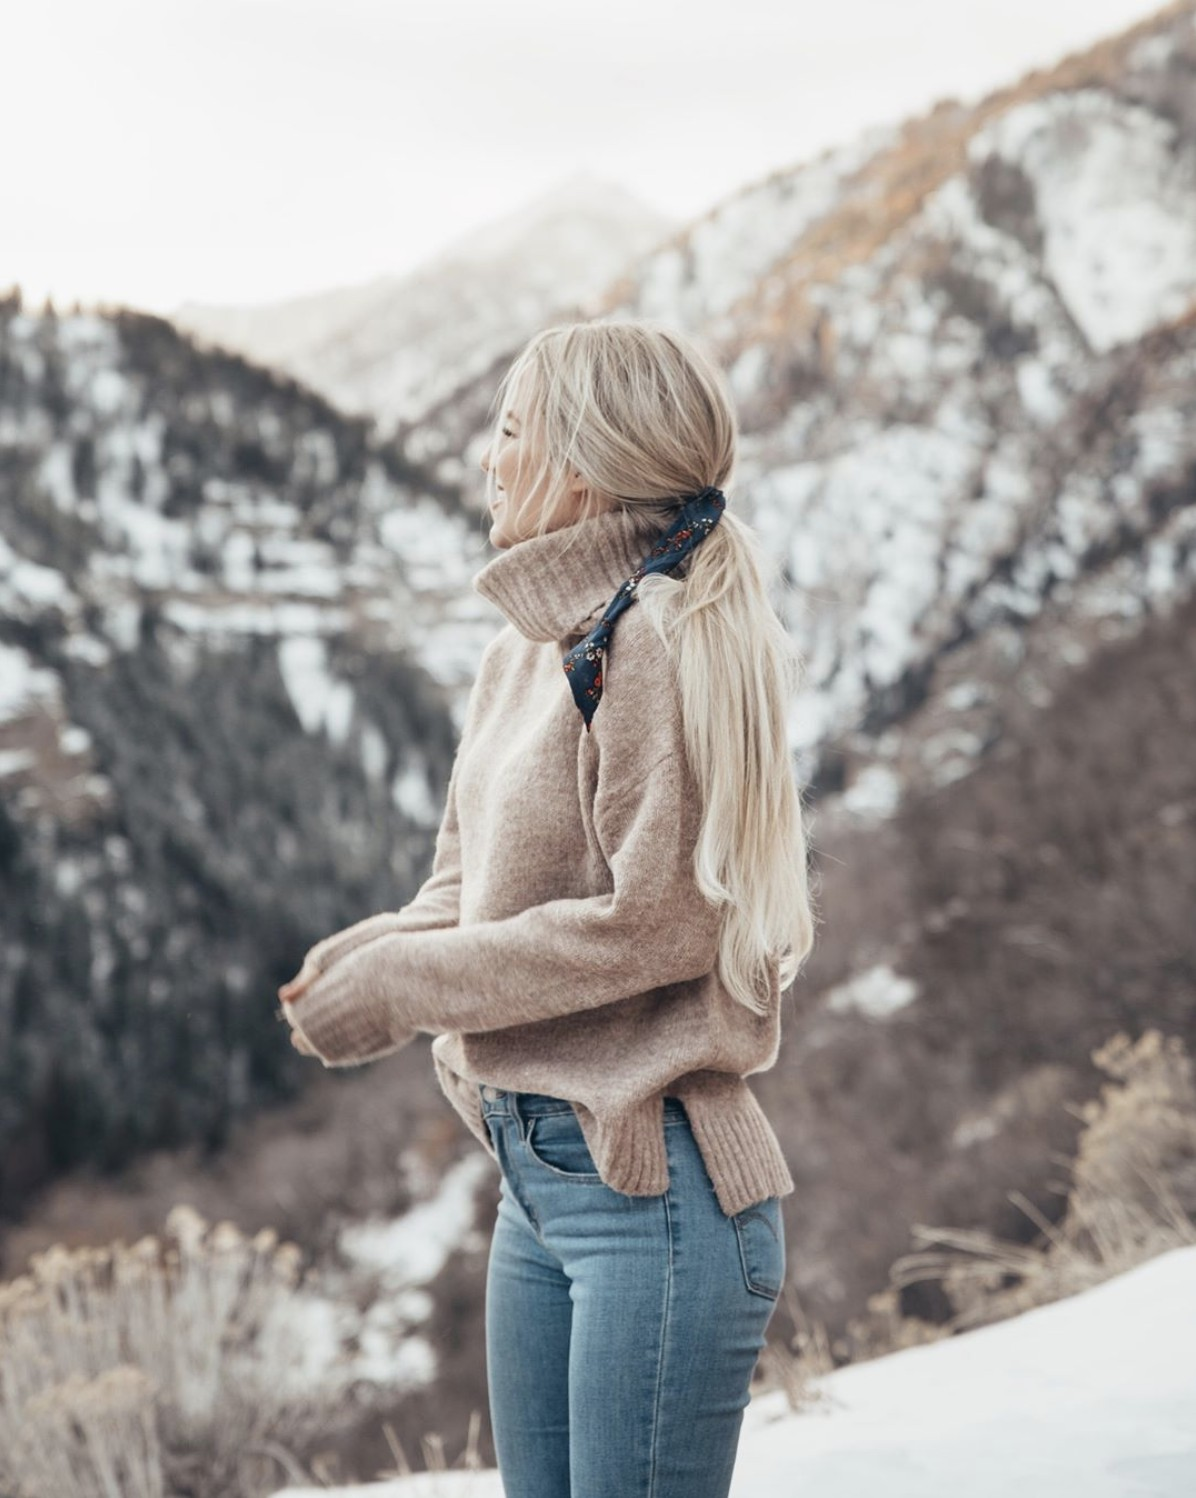 Outfit style with wedding dress, fur clothing, sweater, jacket